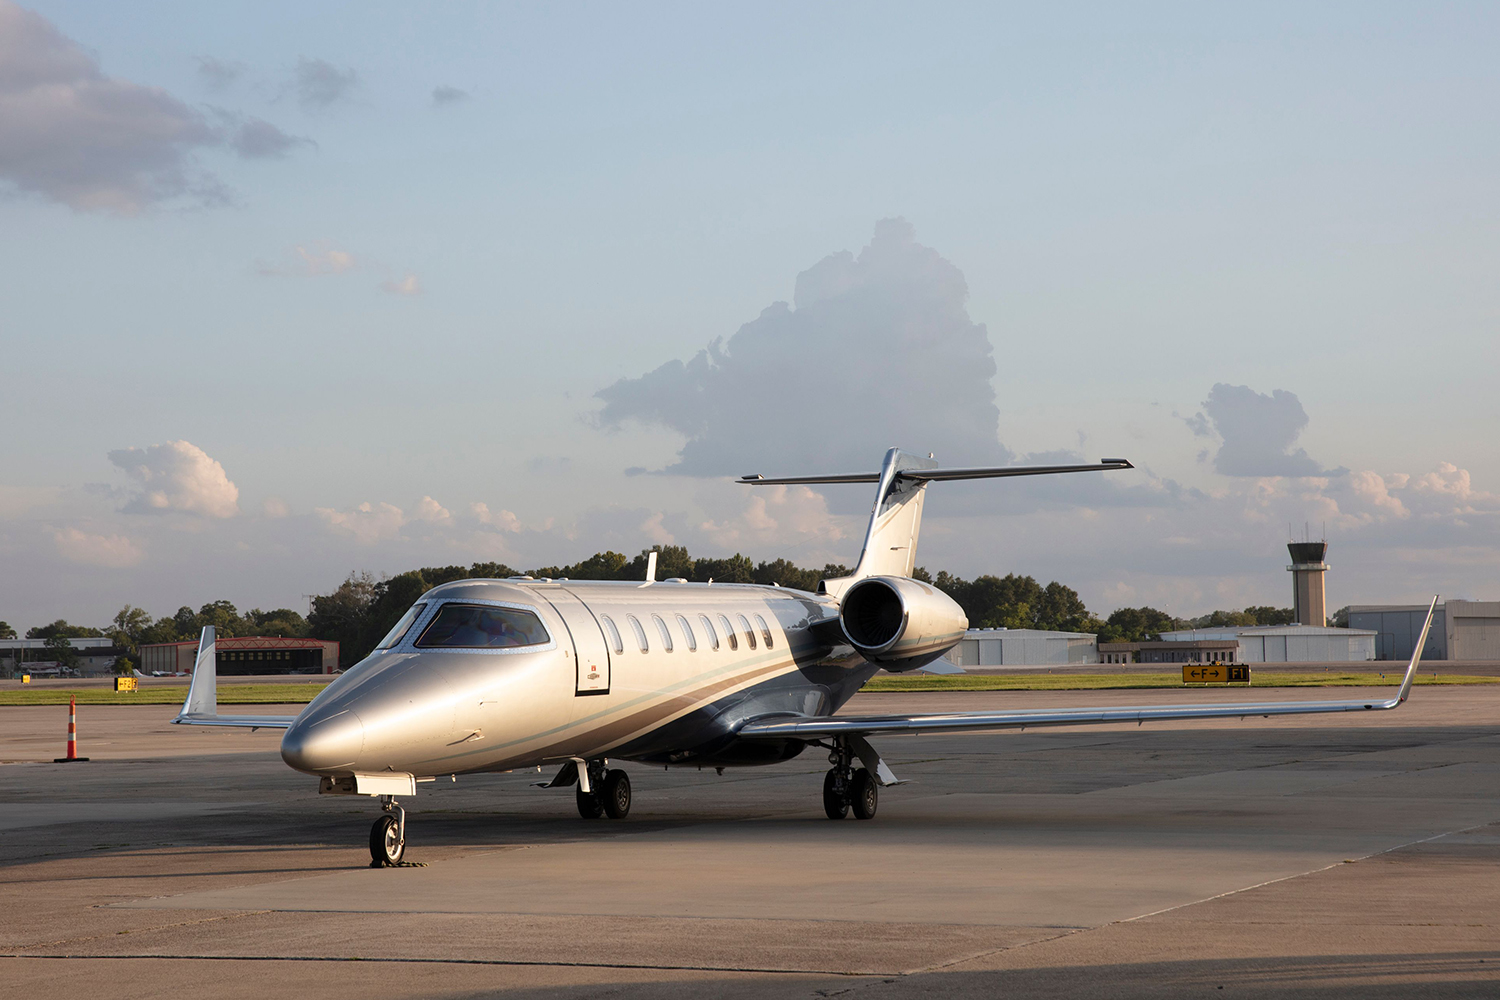 Baton Rouge Air Charter Fleet - Lear 45 - BTR Air Charter